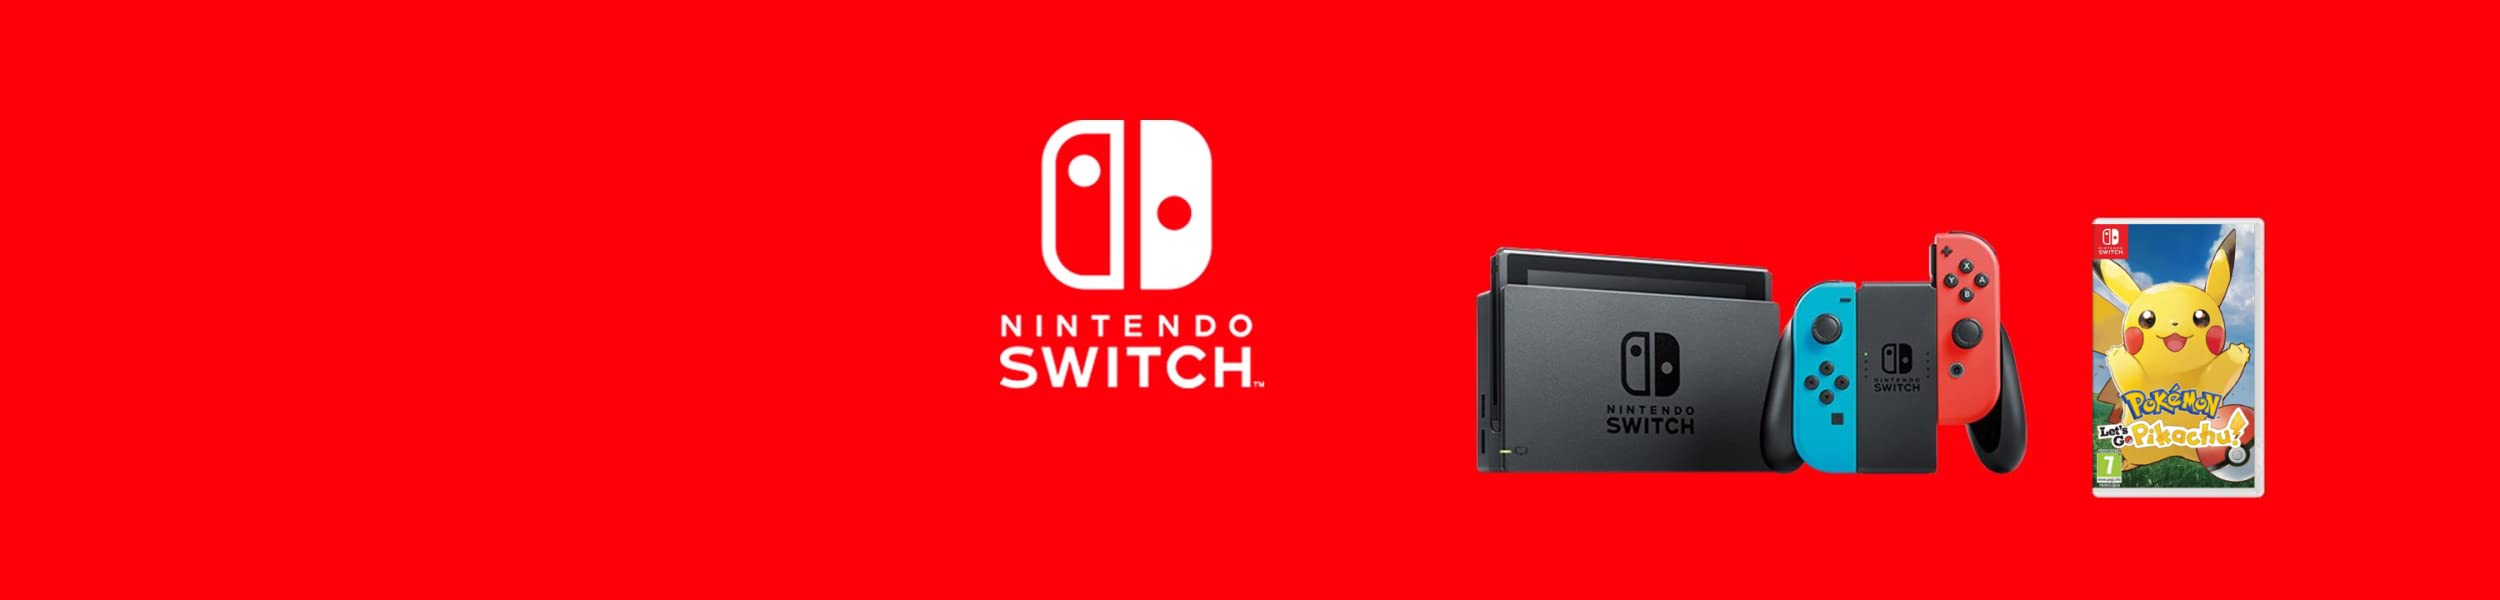 Nintendo Switch con Pokémon Go por 339.90€